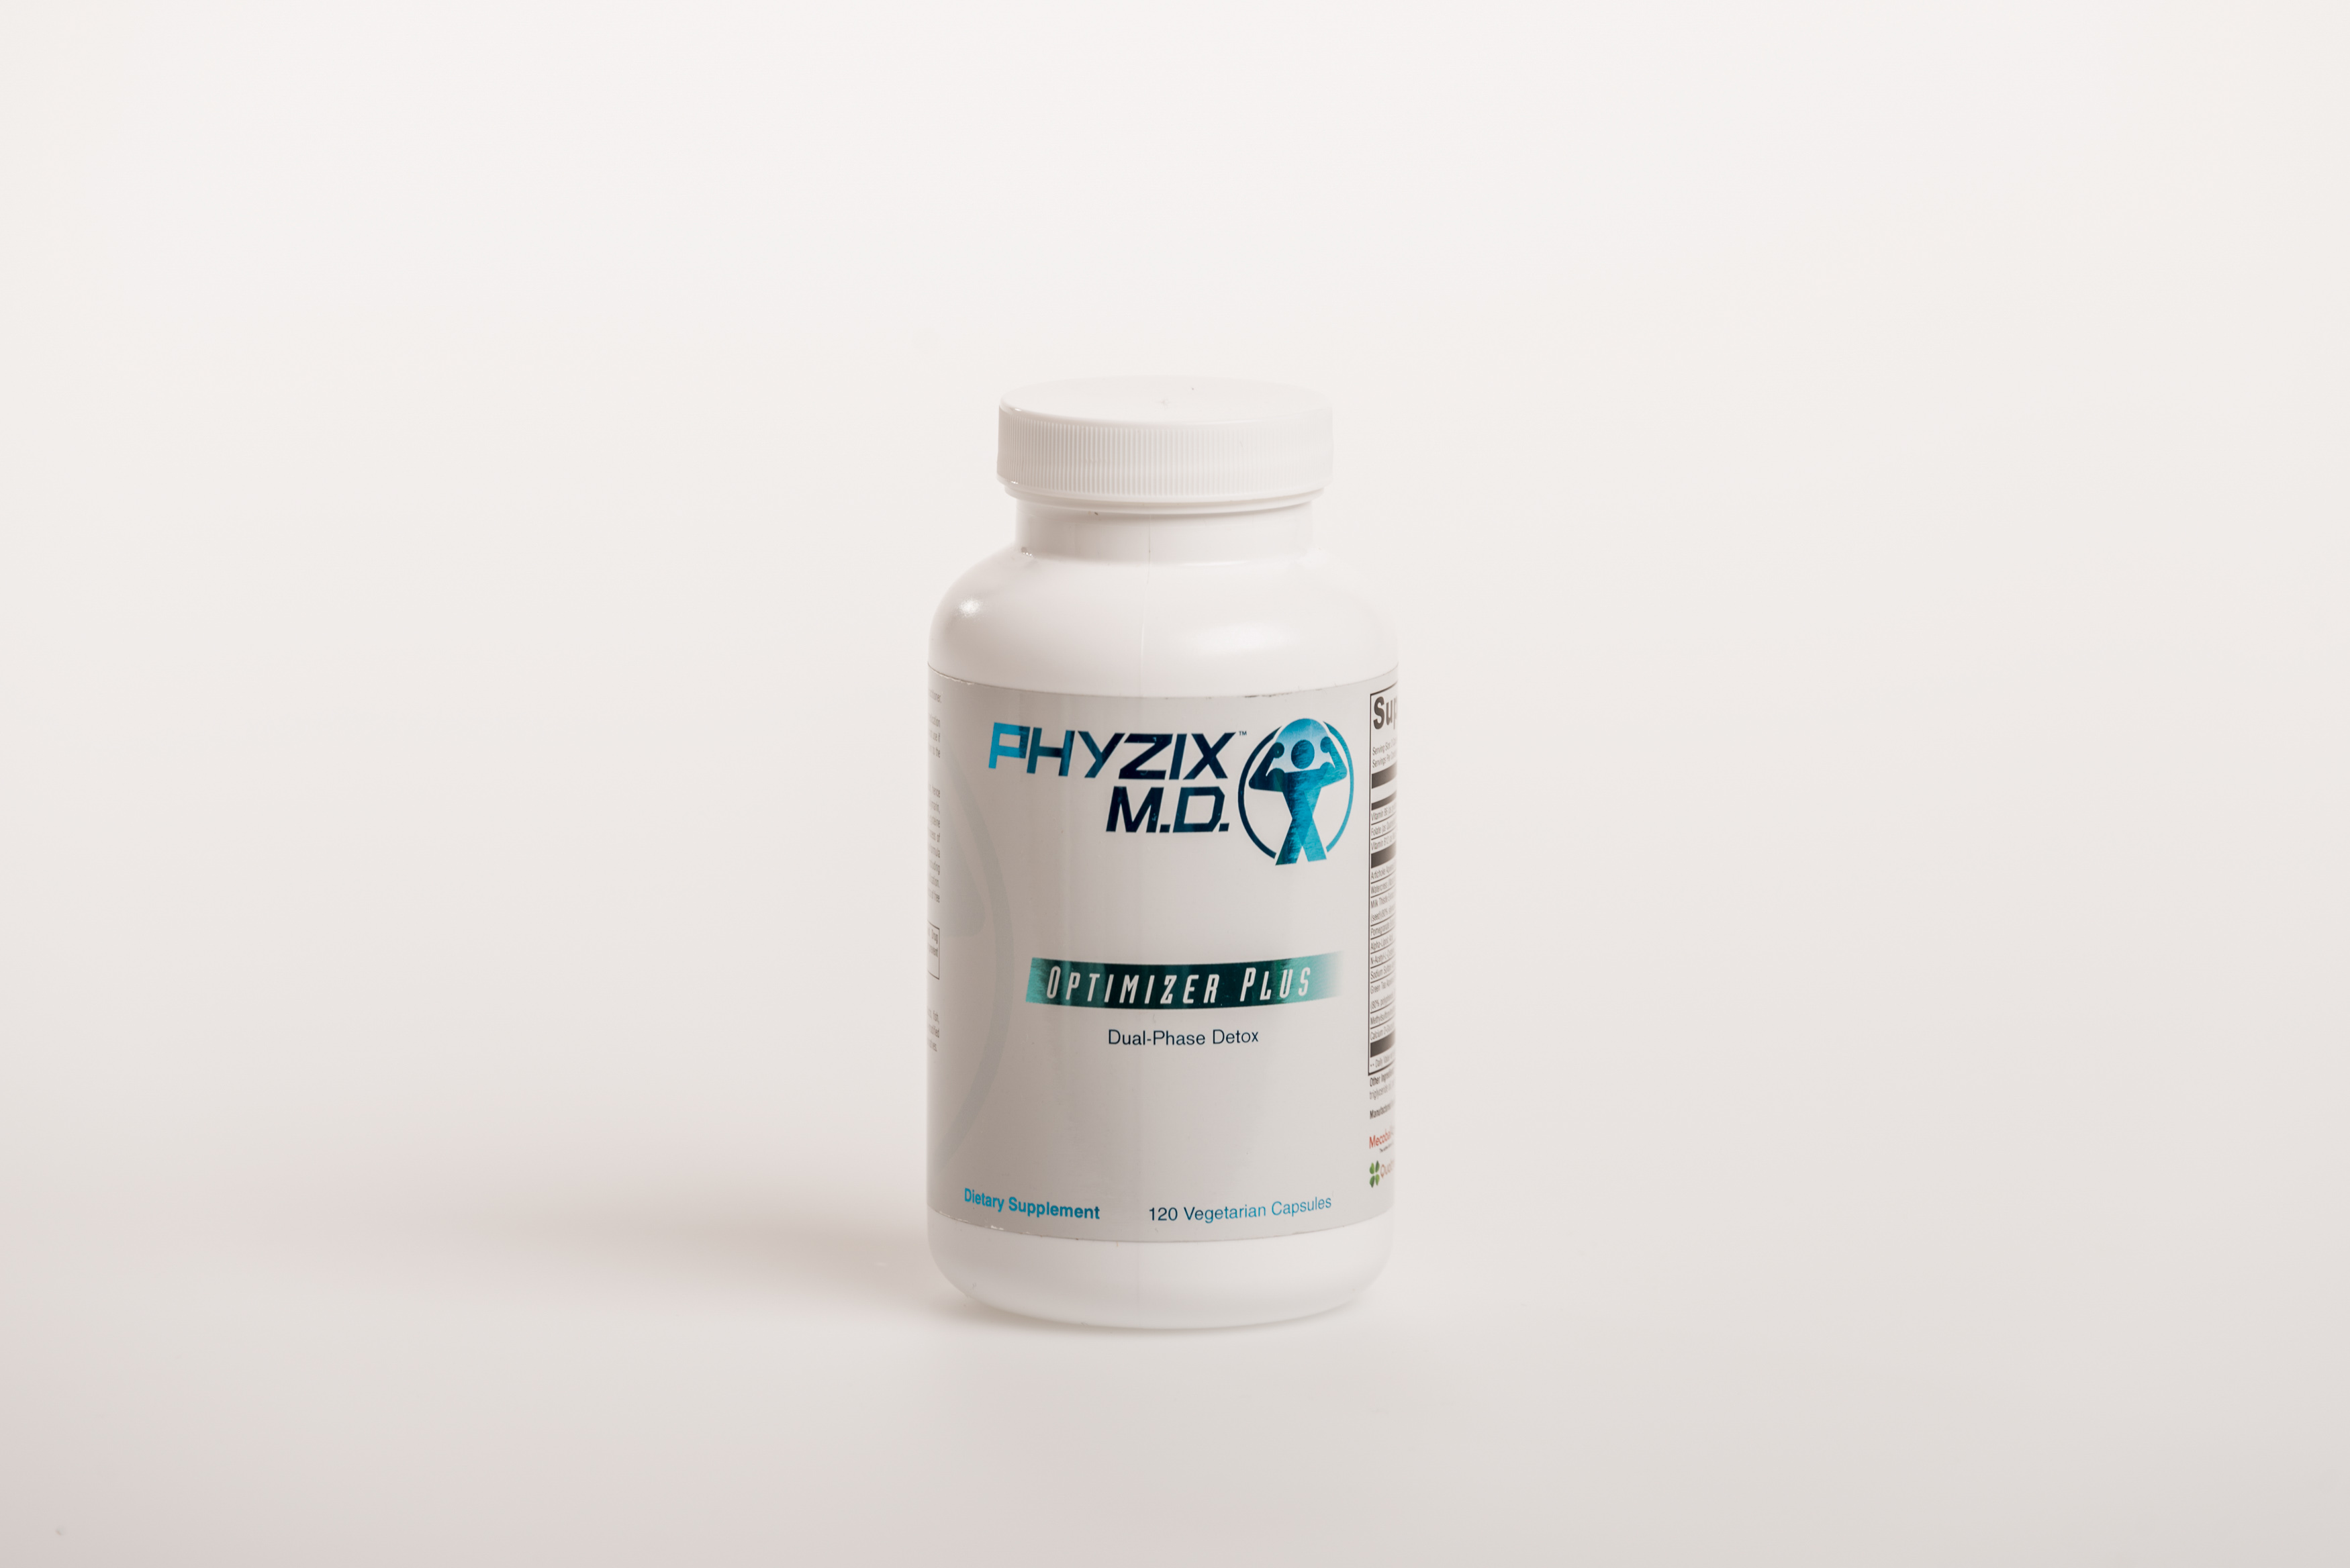 The Phyzix MD Cleanse comes with Optimizer Plus.